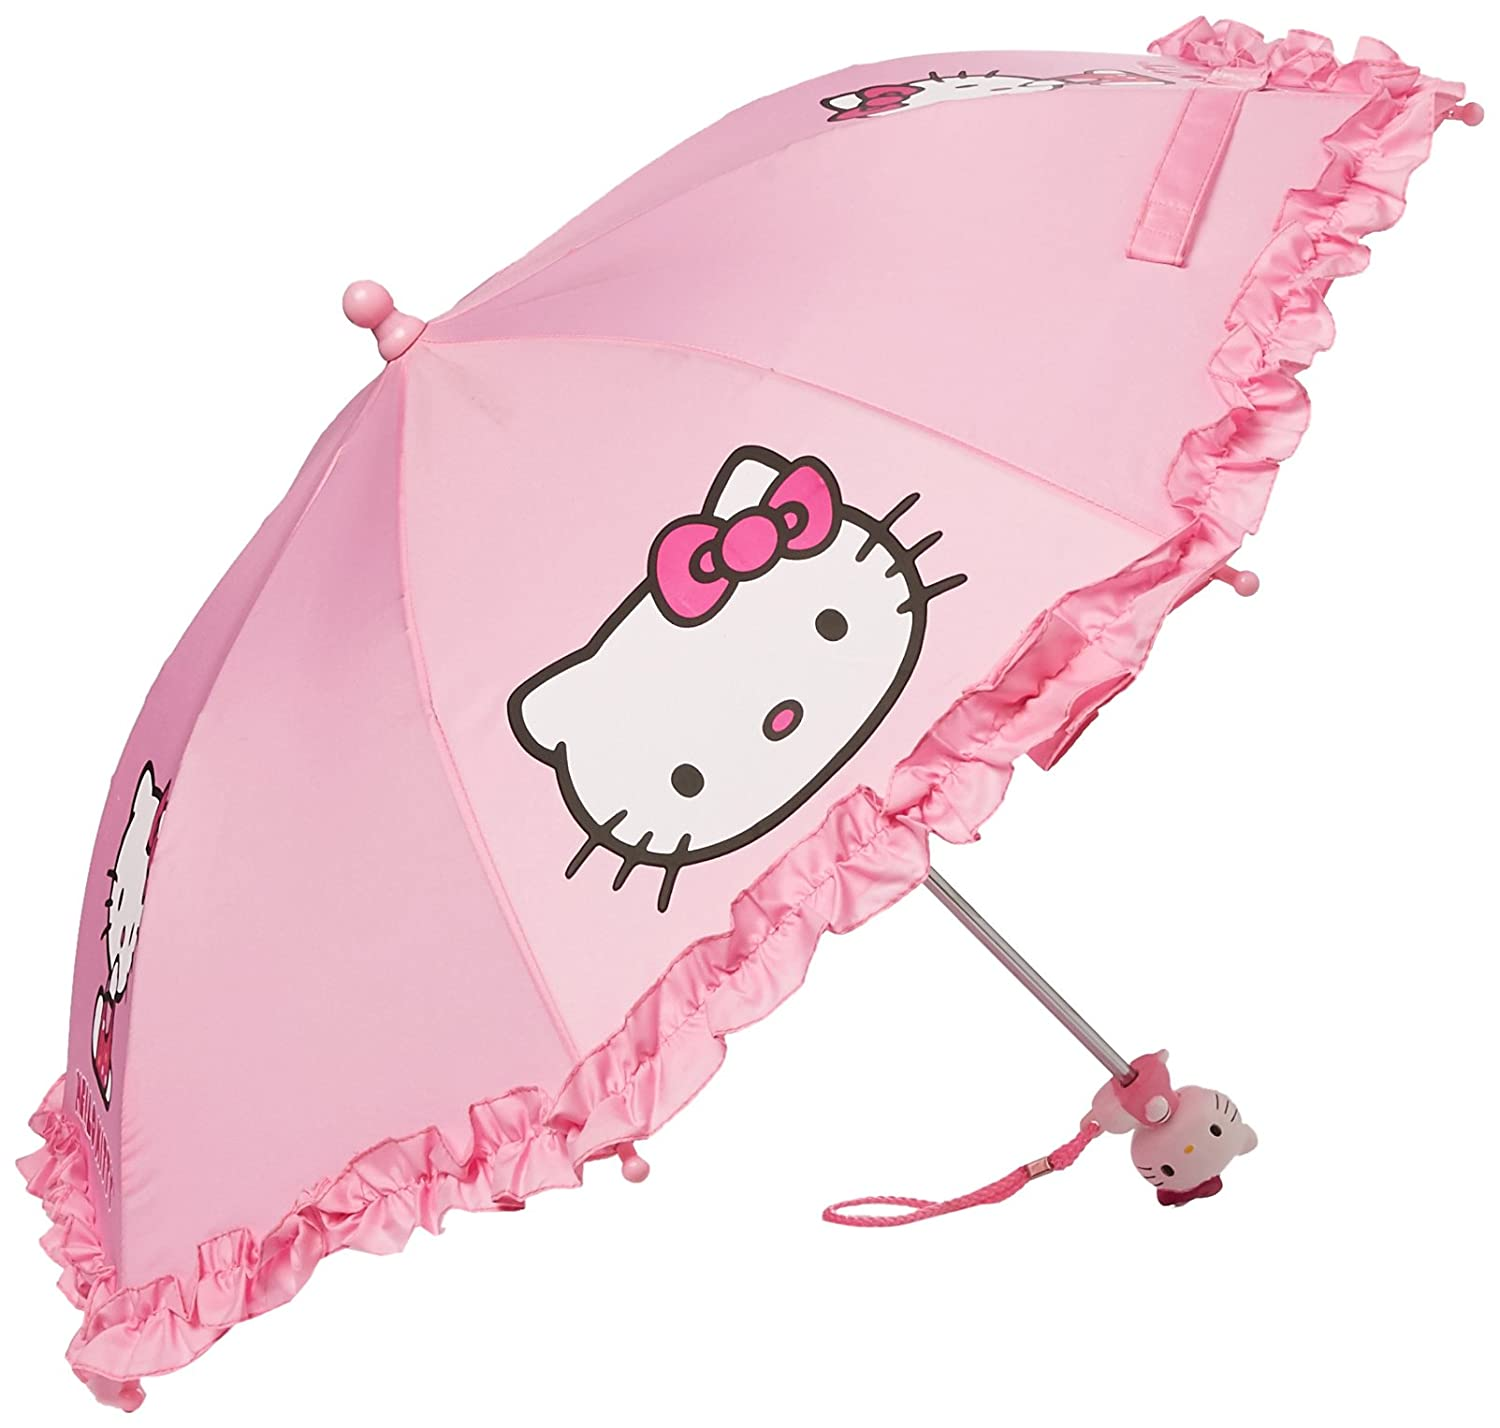 SANRIO Girls' Umbrella With 3D Hello Kitty Figurine Handle Applique 20 Pink